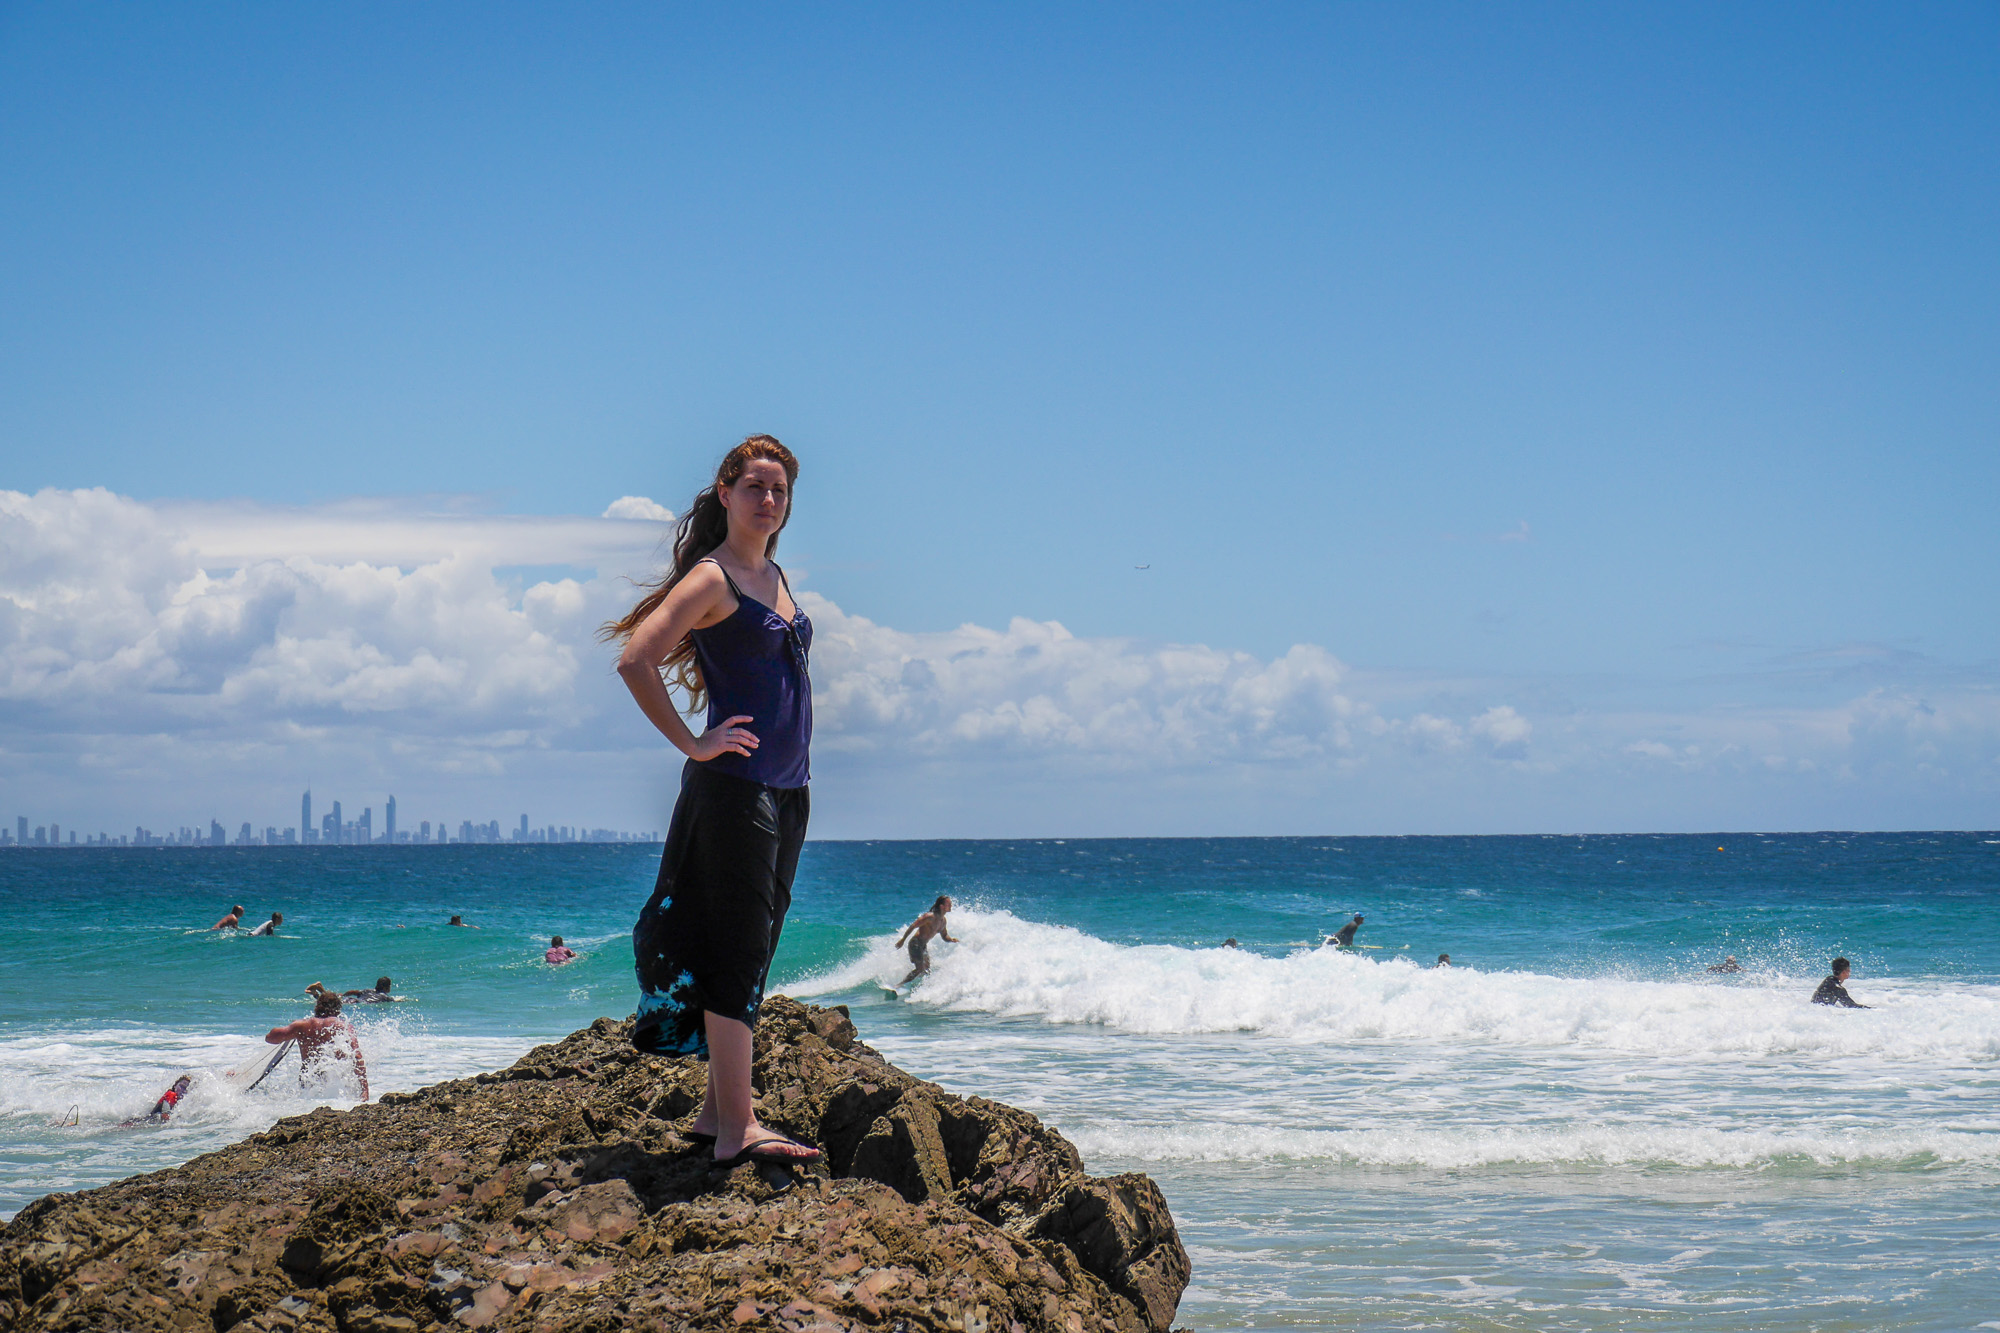 snapper rock, Coolangatta